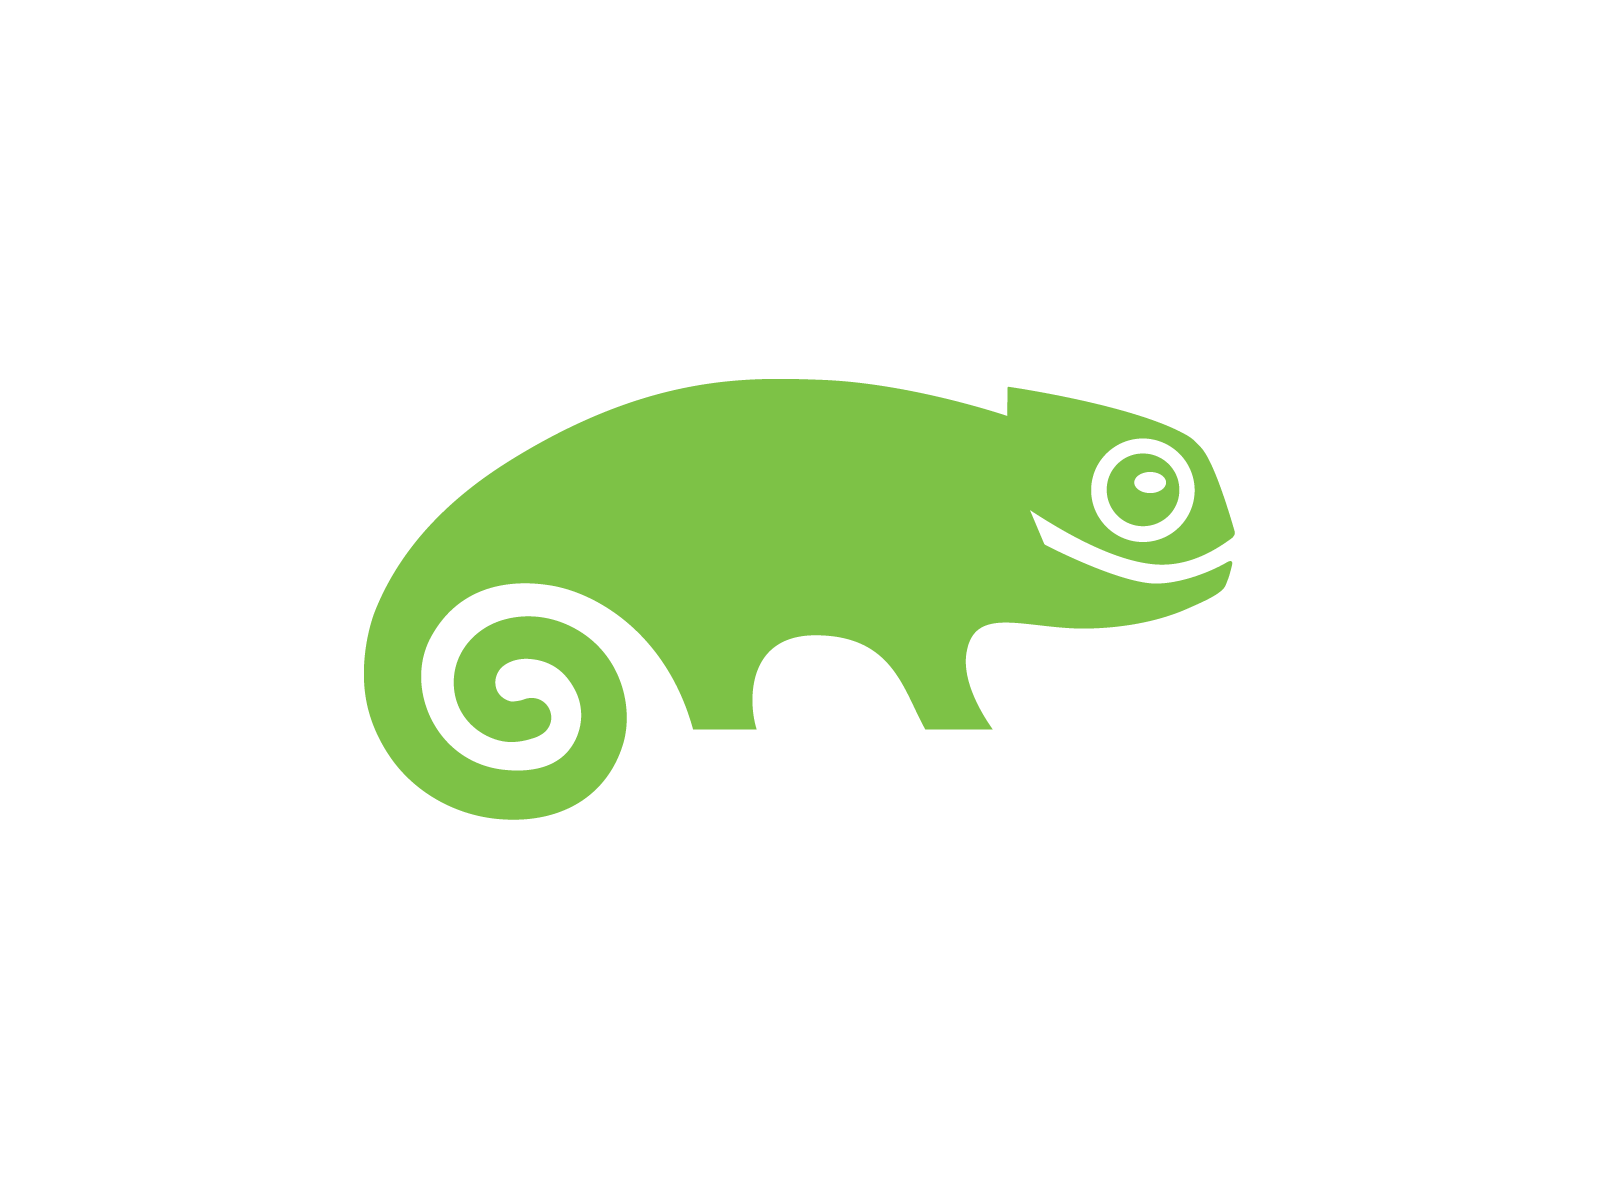 Download Suse Hat Enterprise Opensuse Lizard Linux.